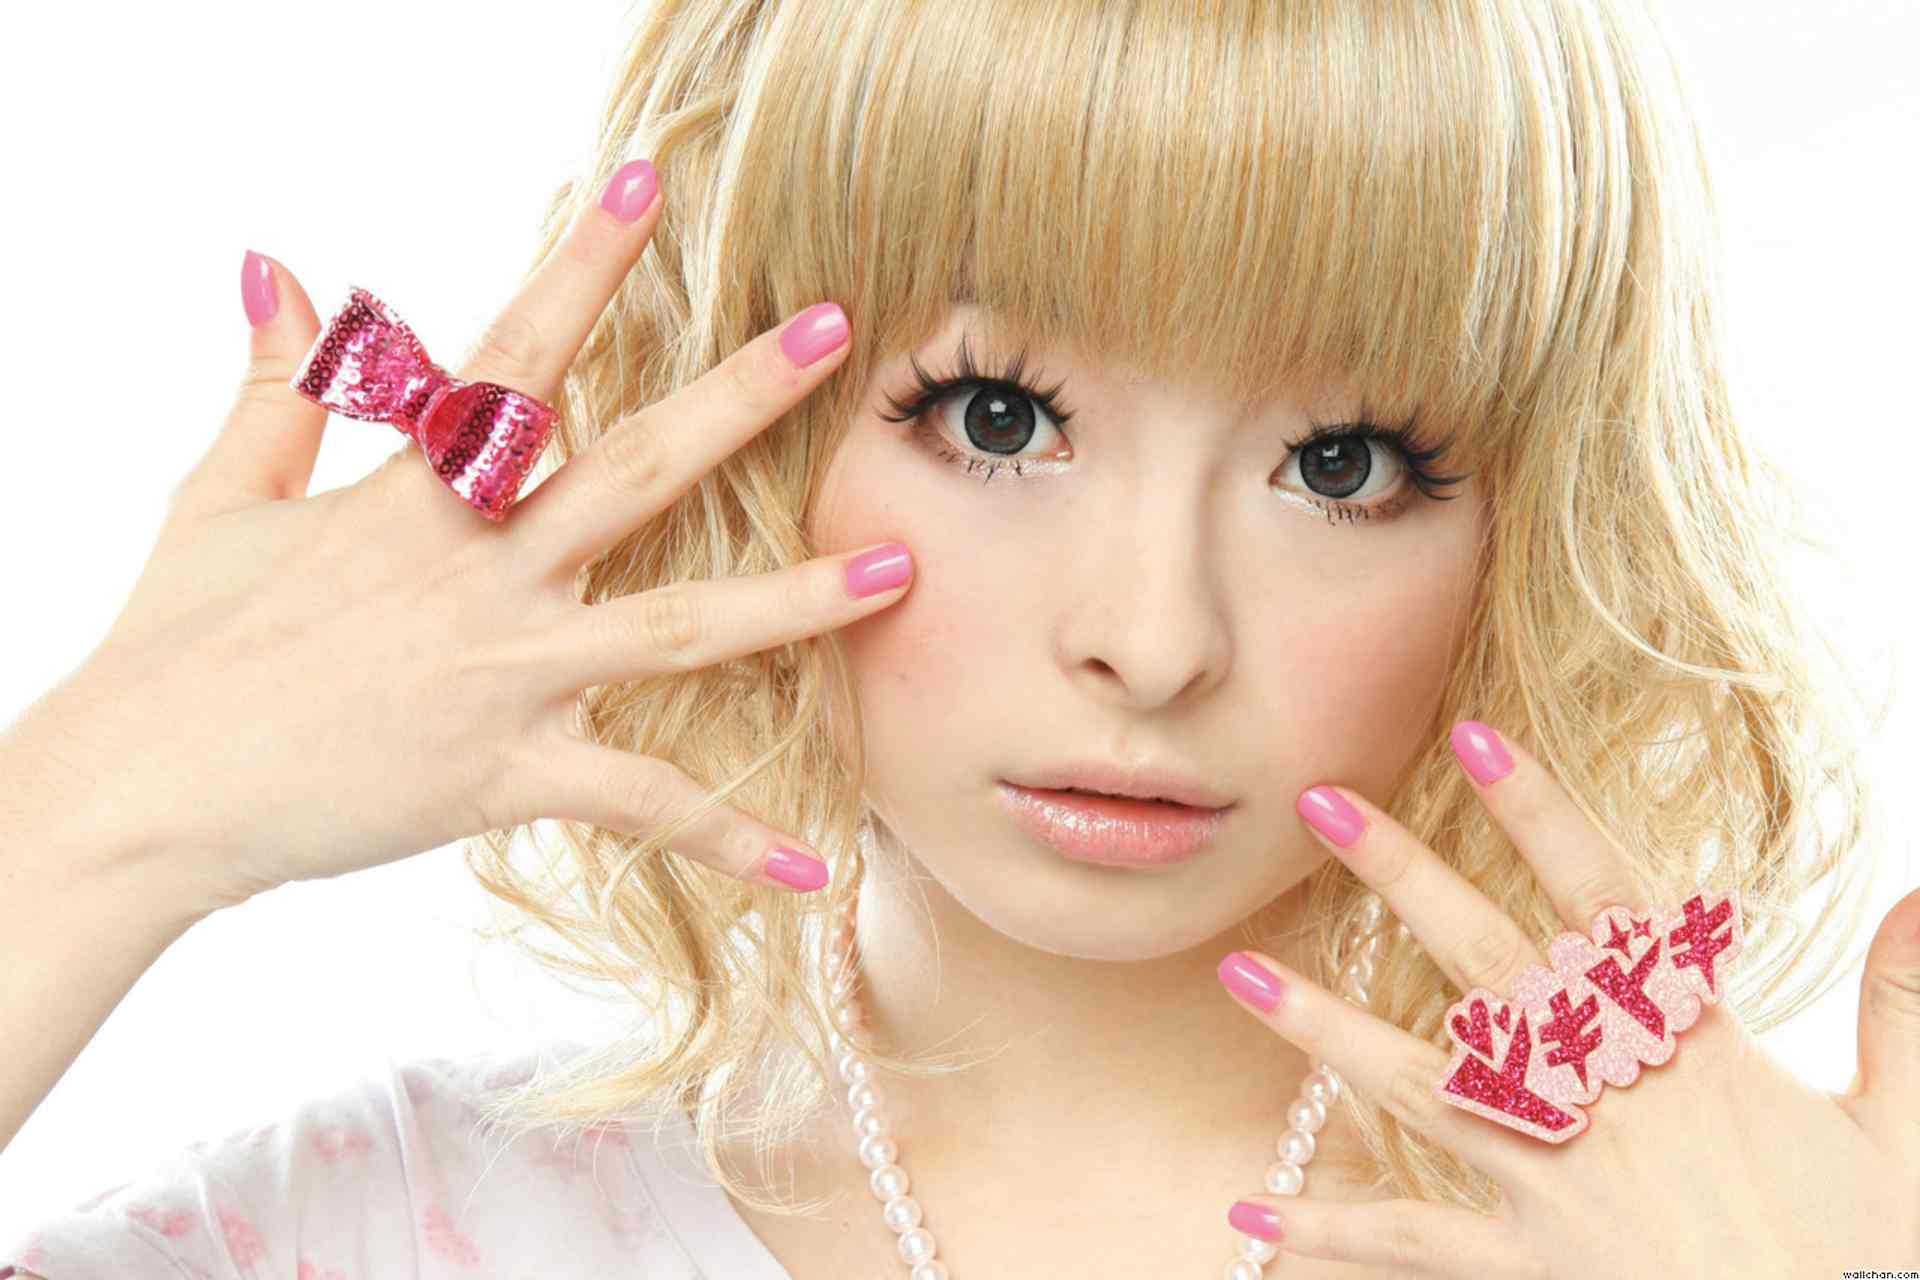 Kyary helps promote oral care